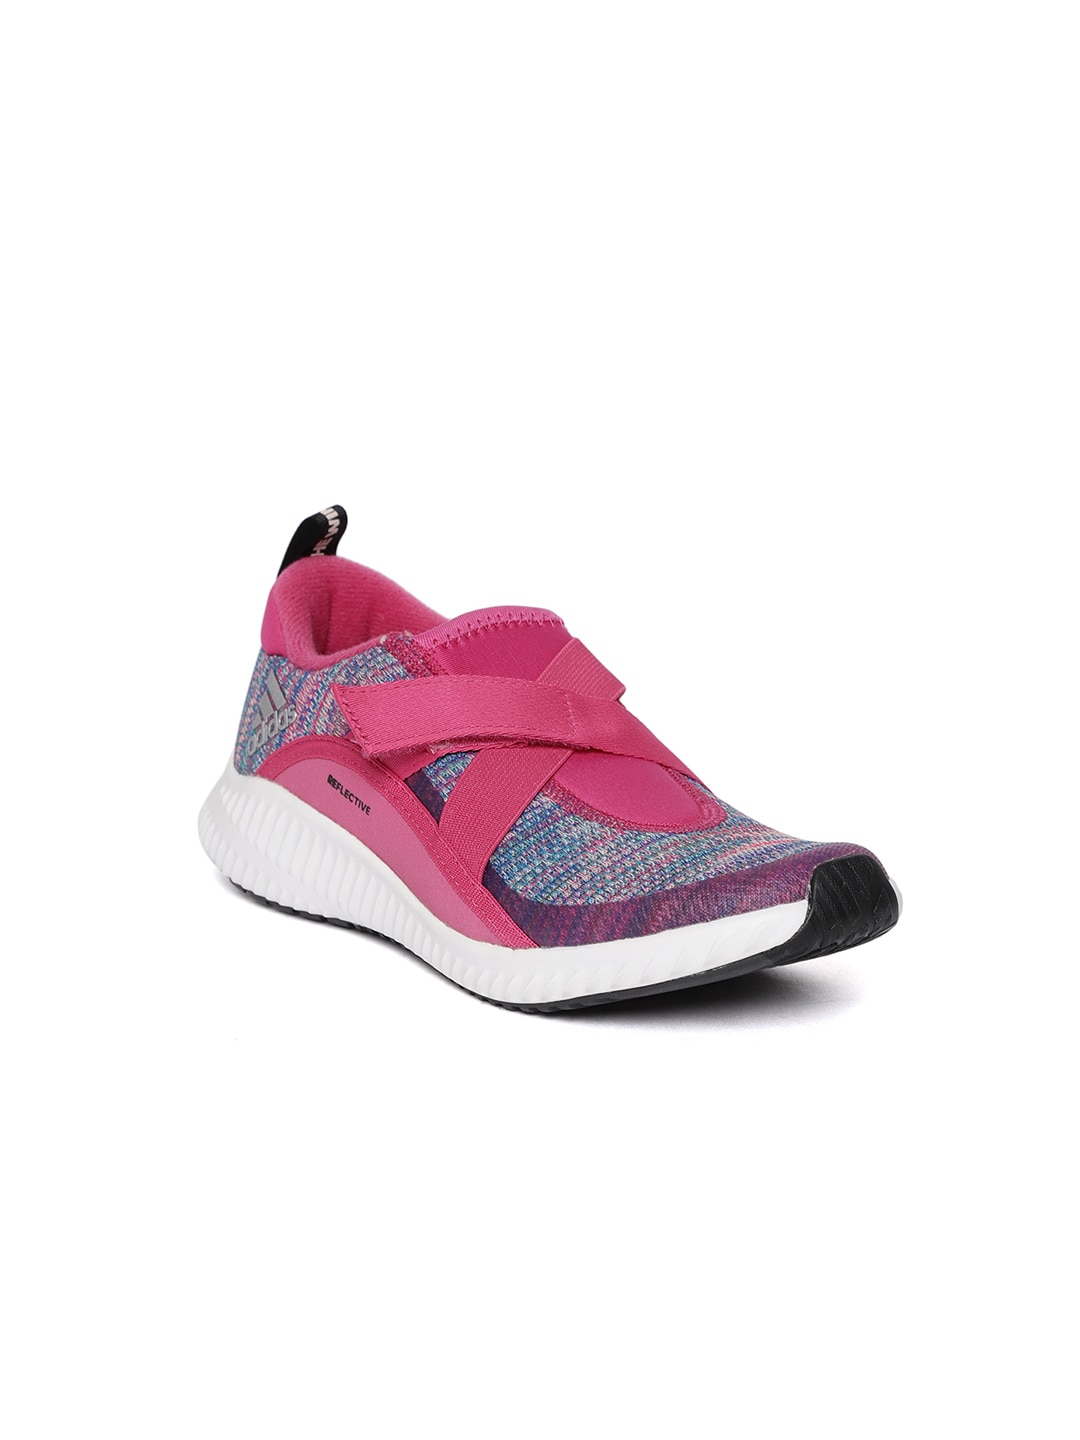 Boys Shoes 2 - Buy Boys Shoes 2 online in India 0cefe1400